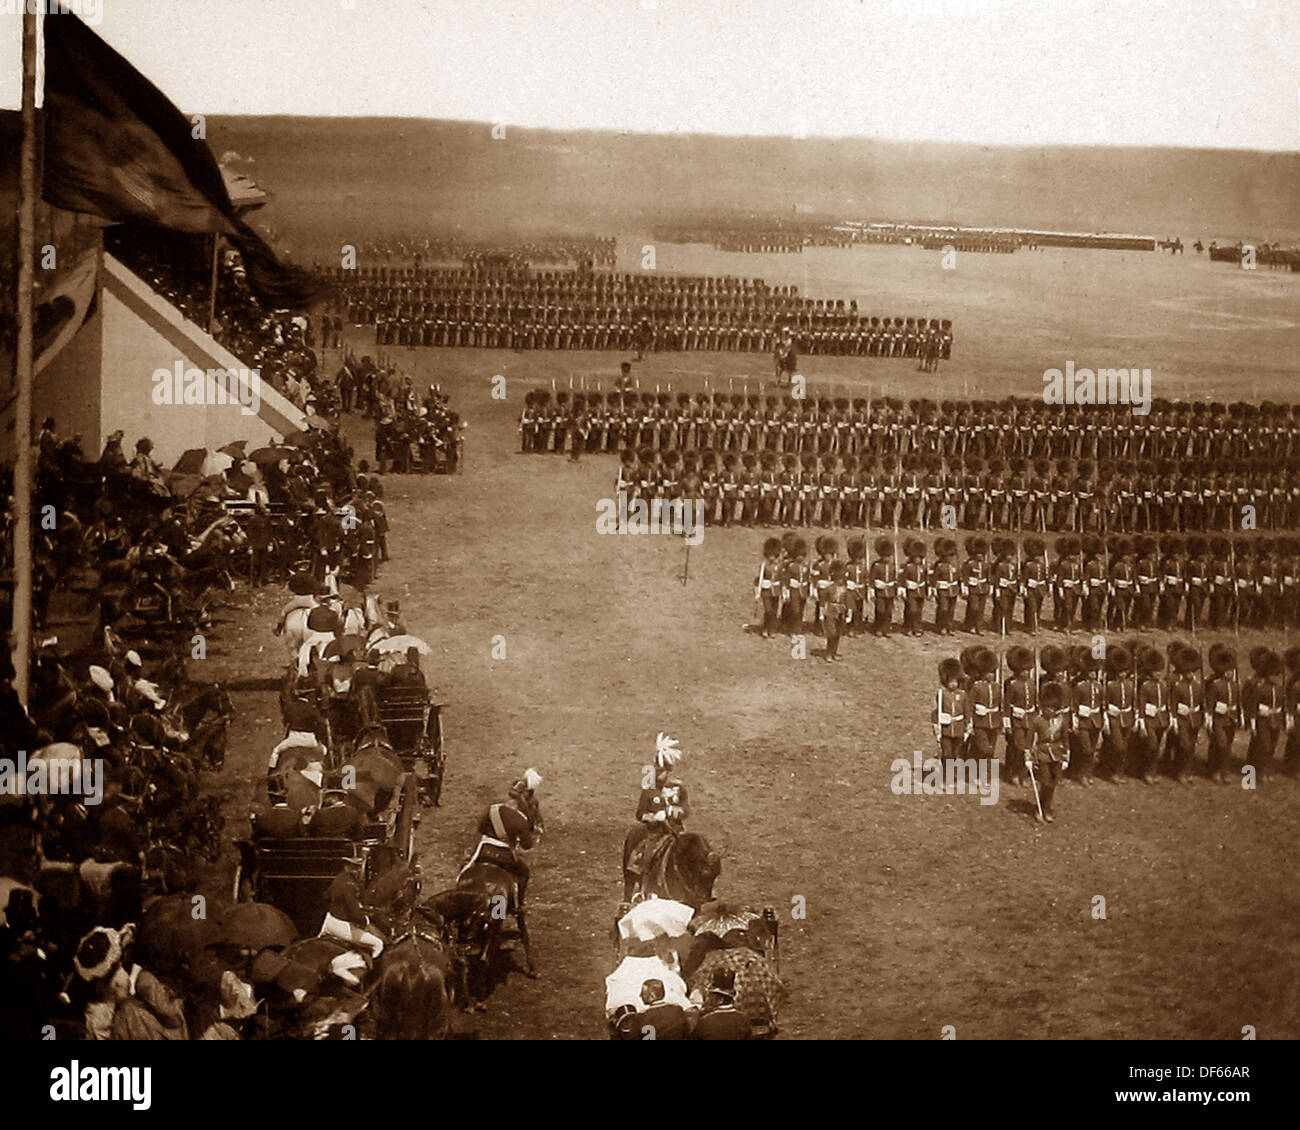 Queen Victoria Diamond Jubilee Review at Aldershot - Guards - Victorian period - Stock Image